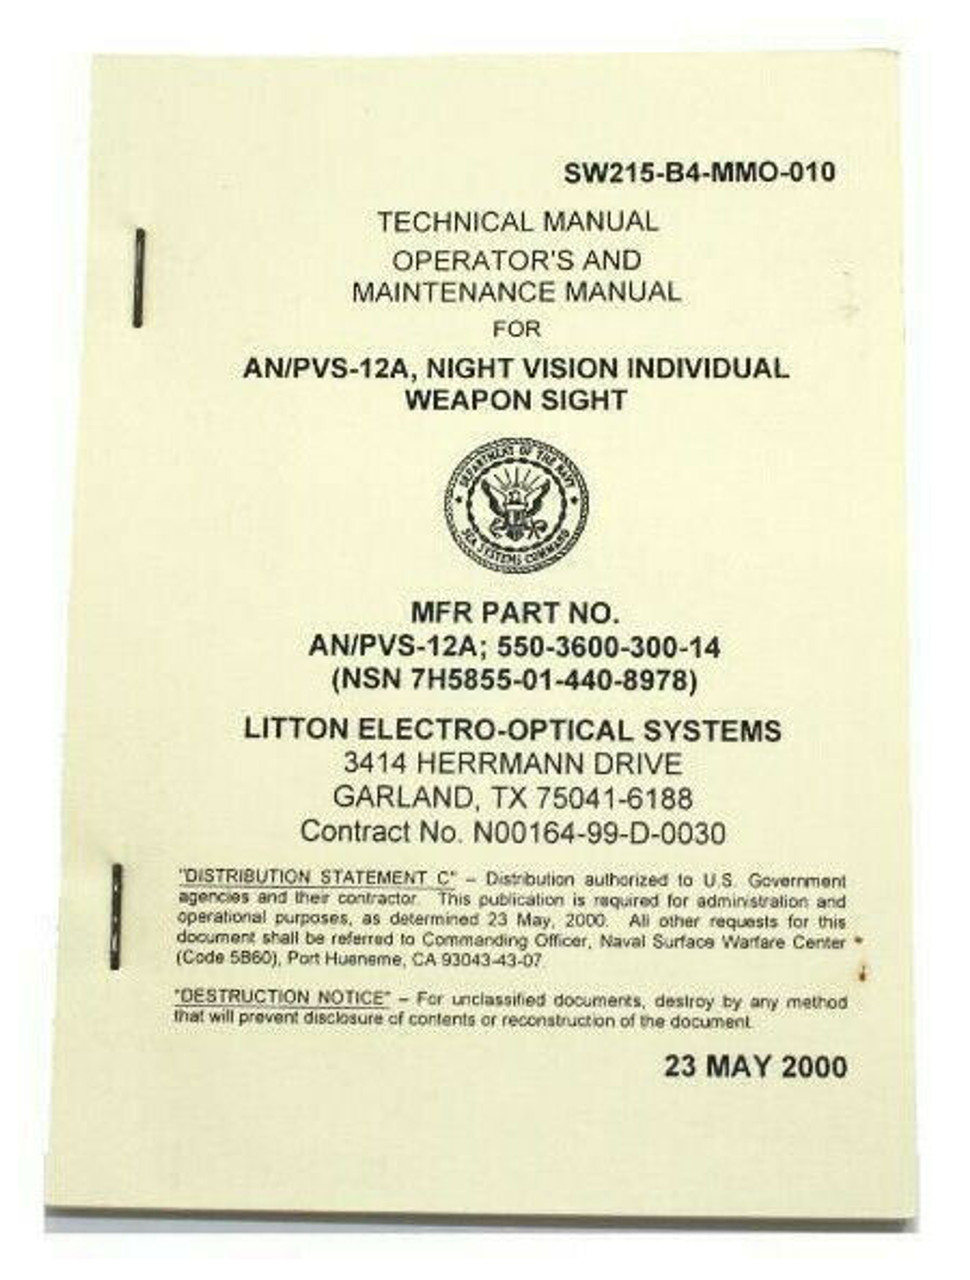 AN/PVS-12A Aquila 4X Night Vision Weapon Sight Operator's Manual L-3 Litton; NEW